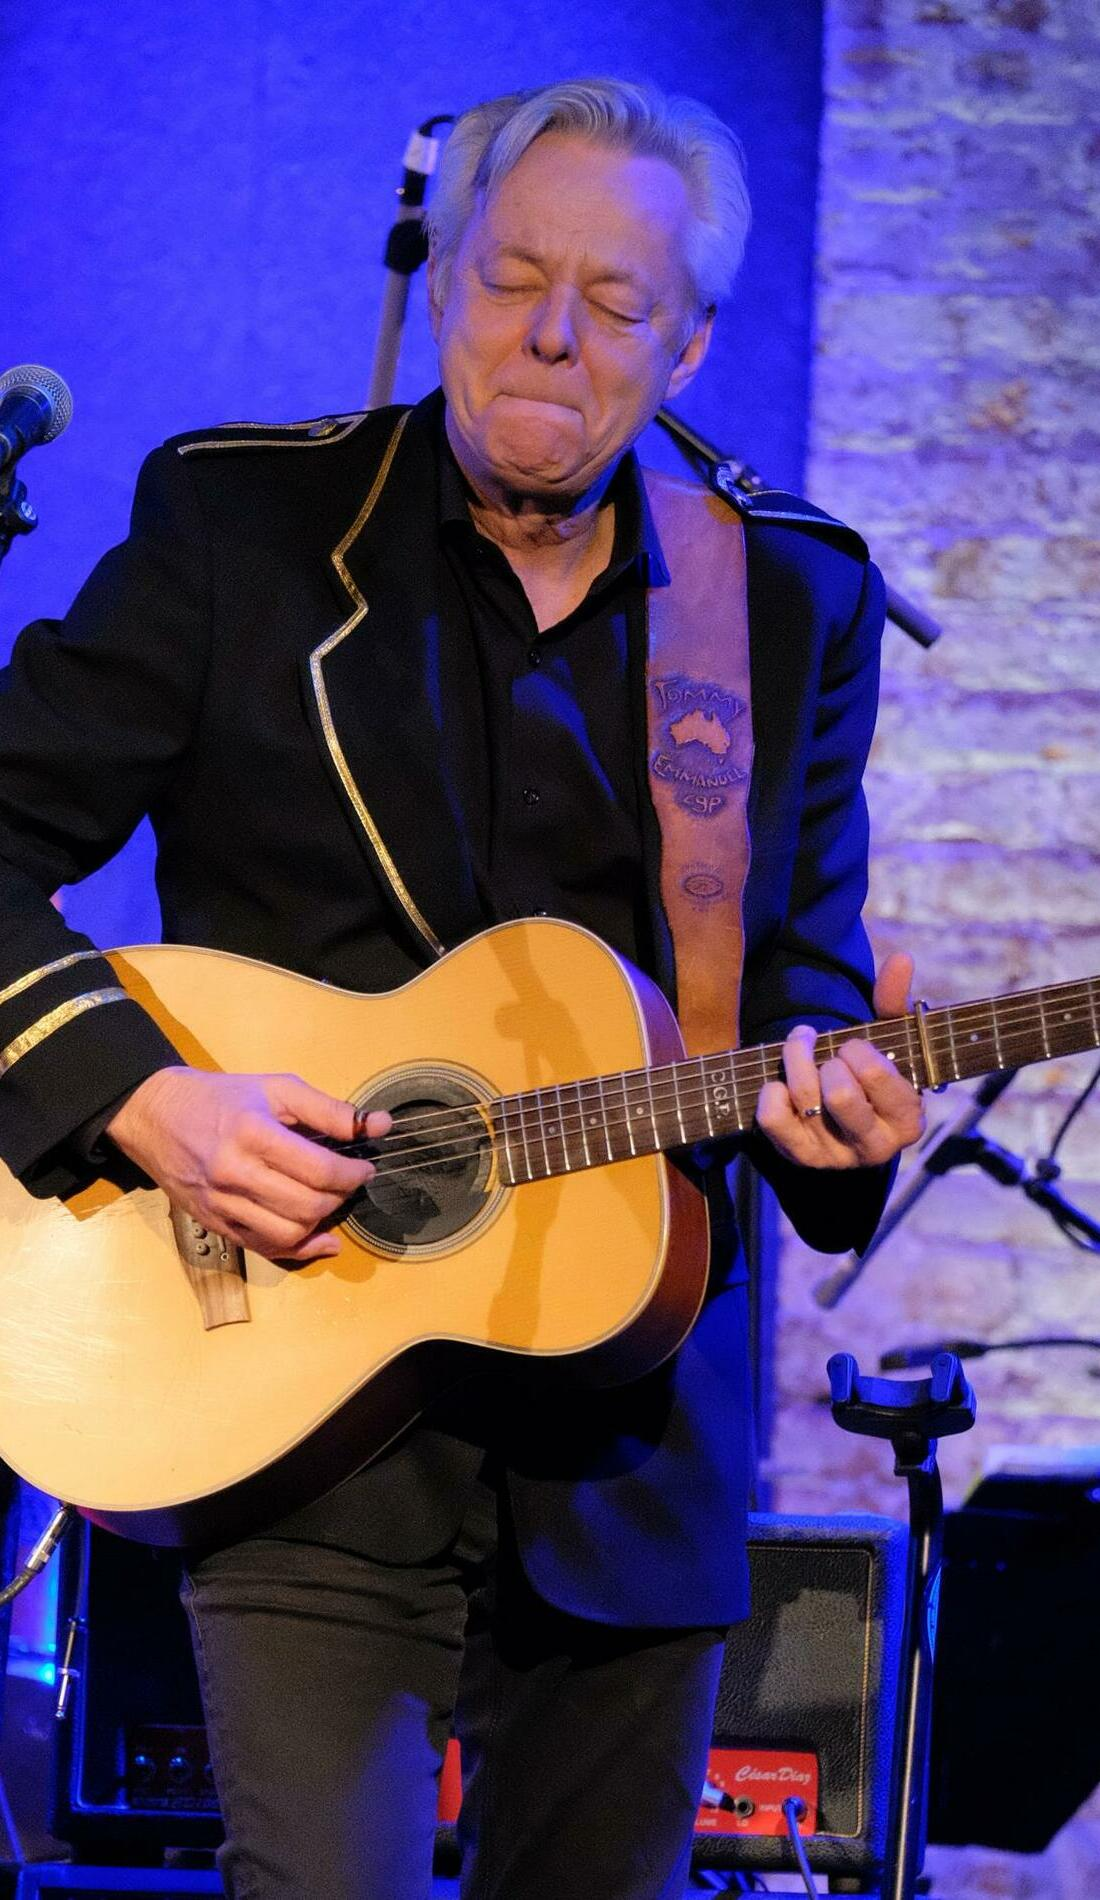 A Tommy Emmanuel live event